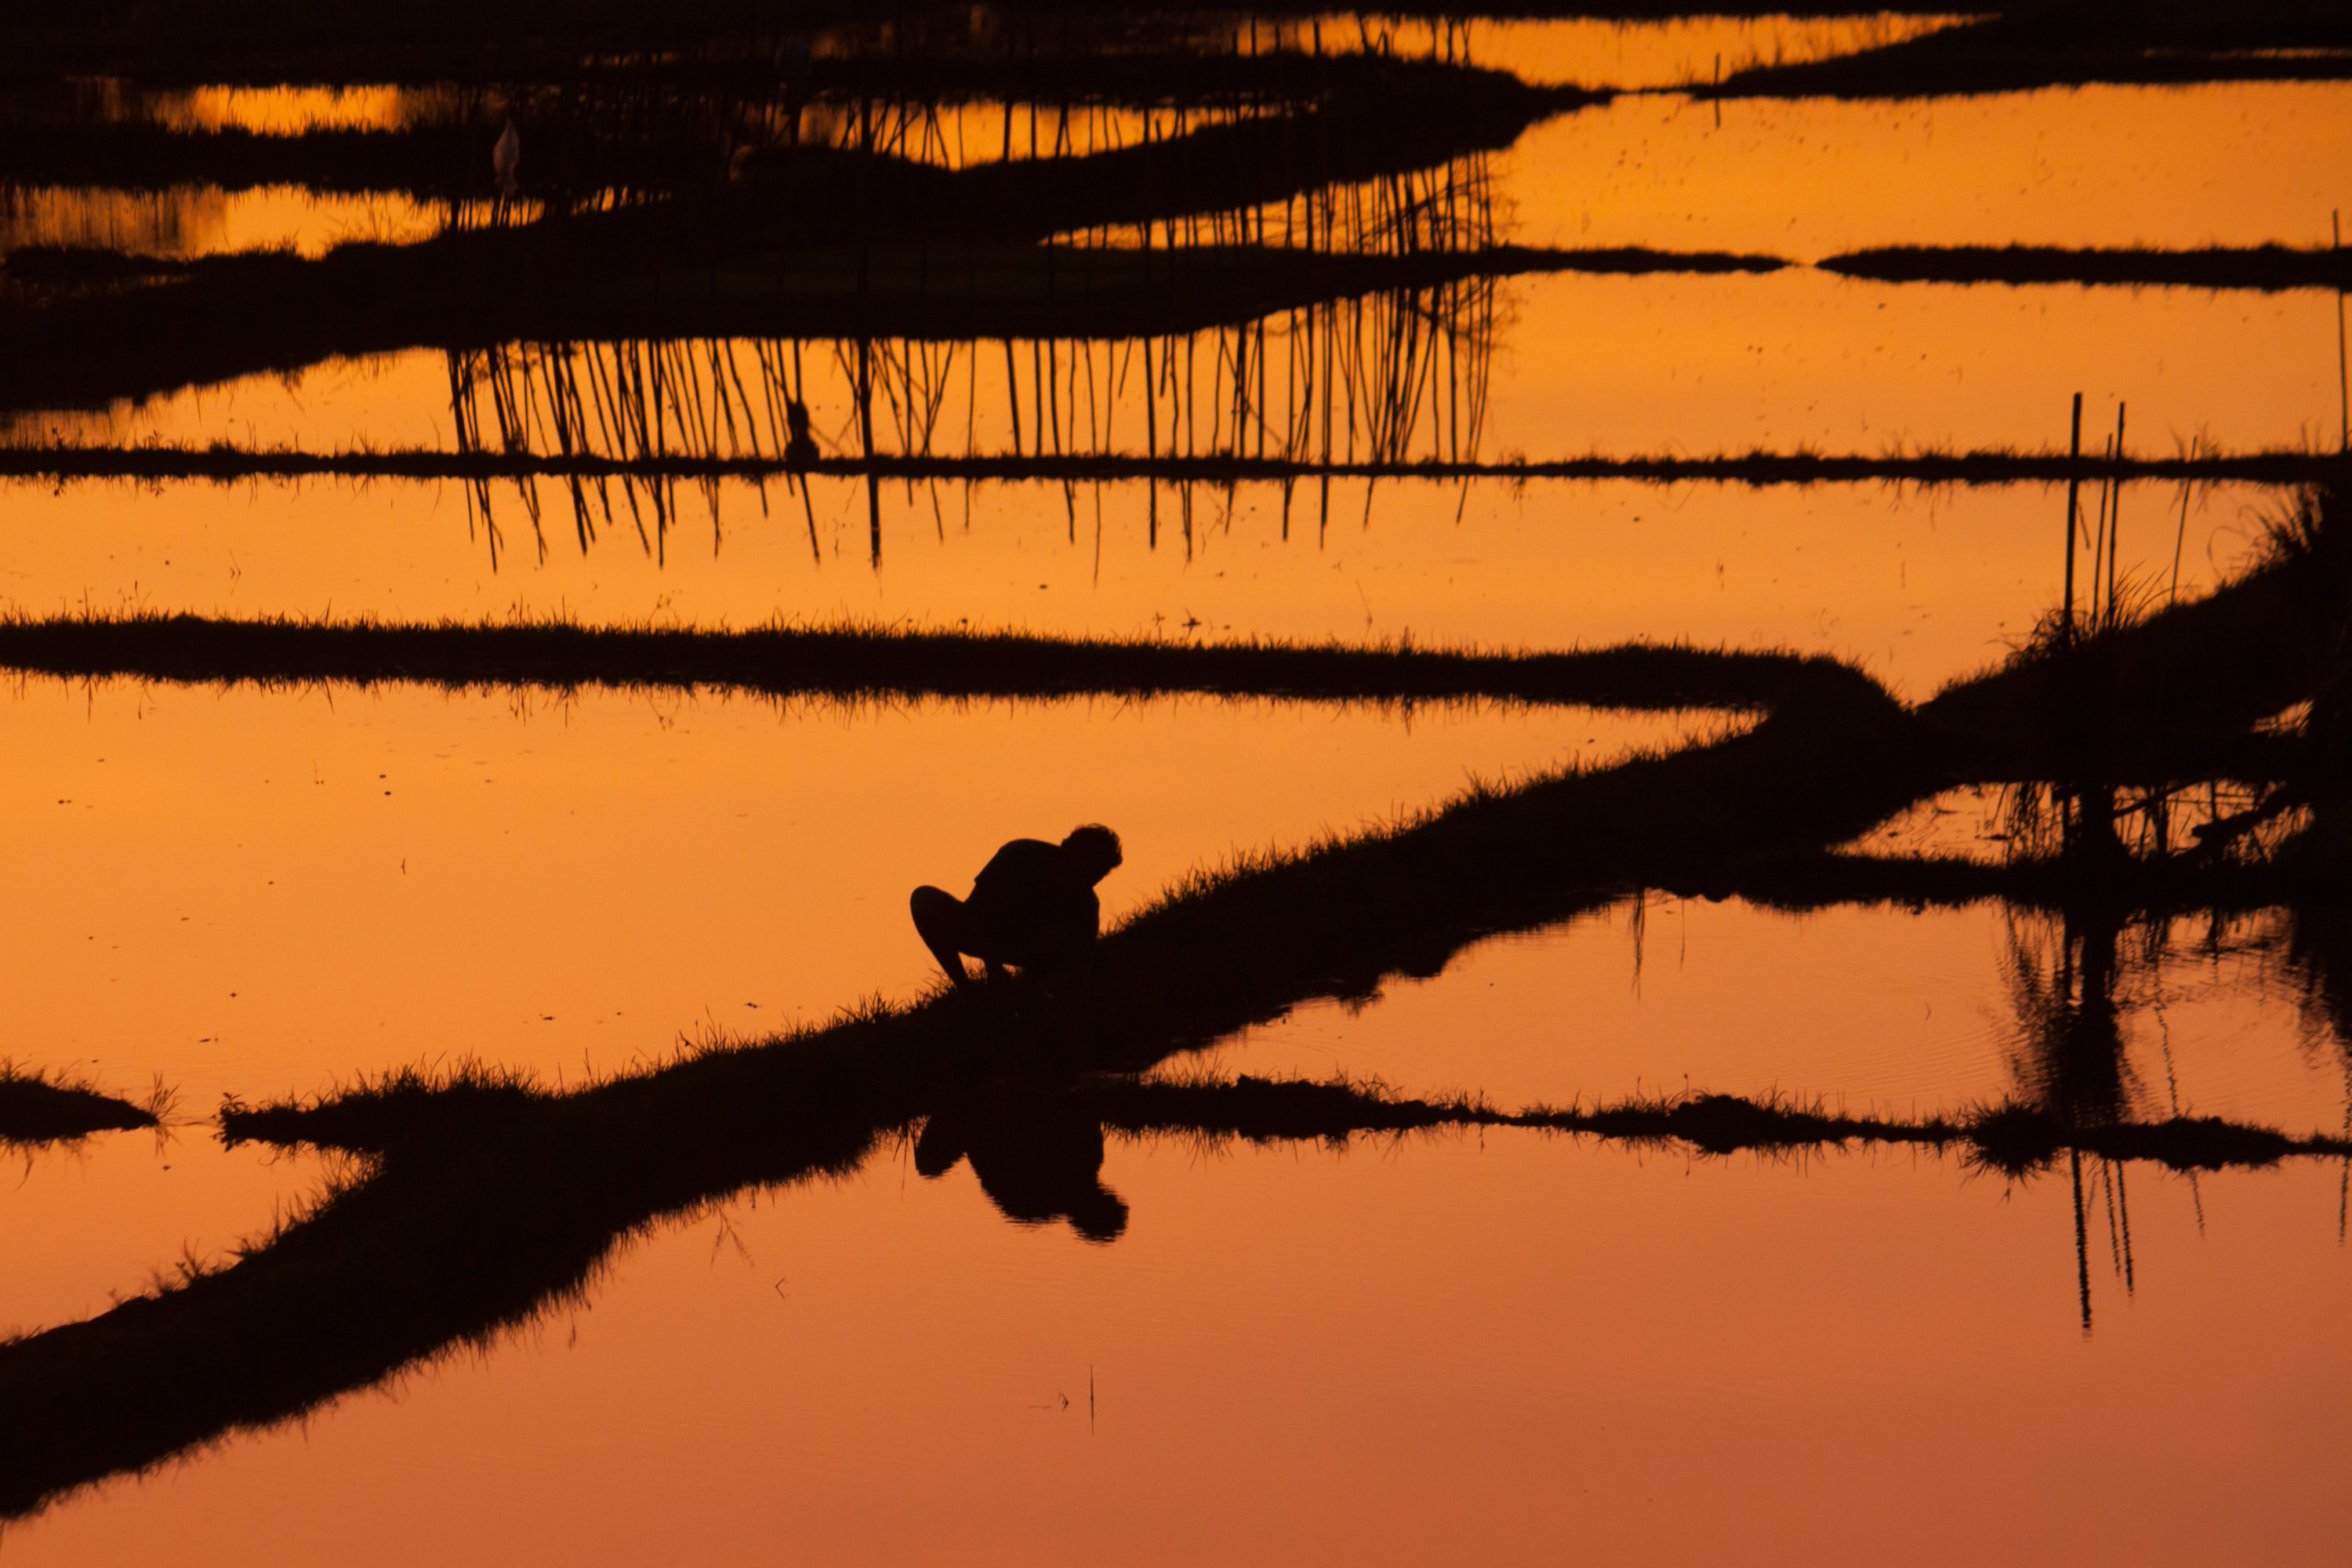 silhouette of person on rice field